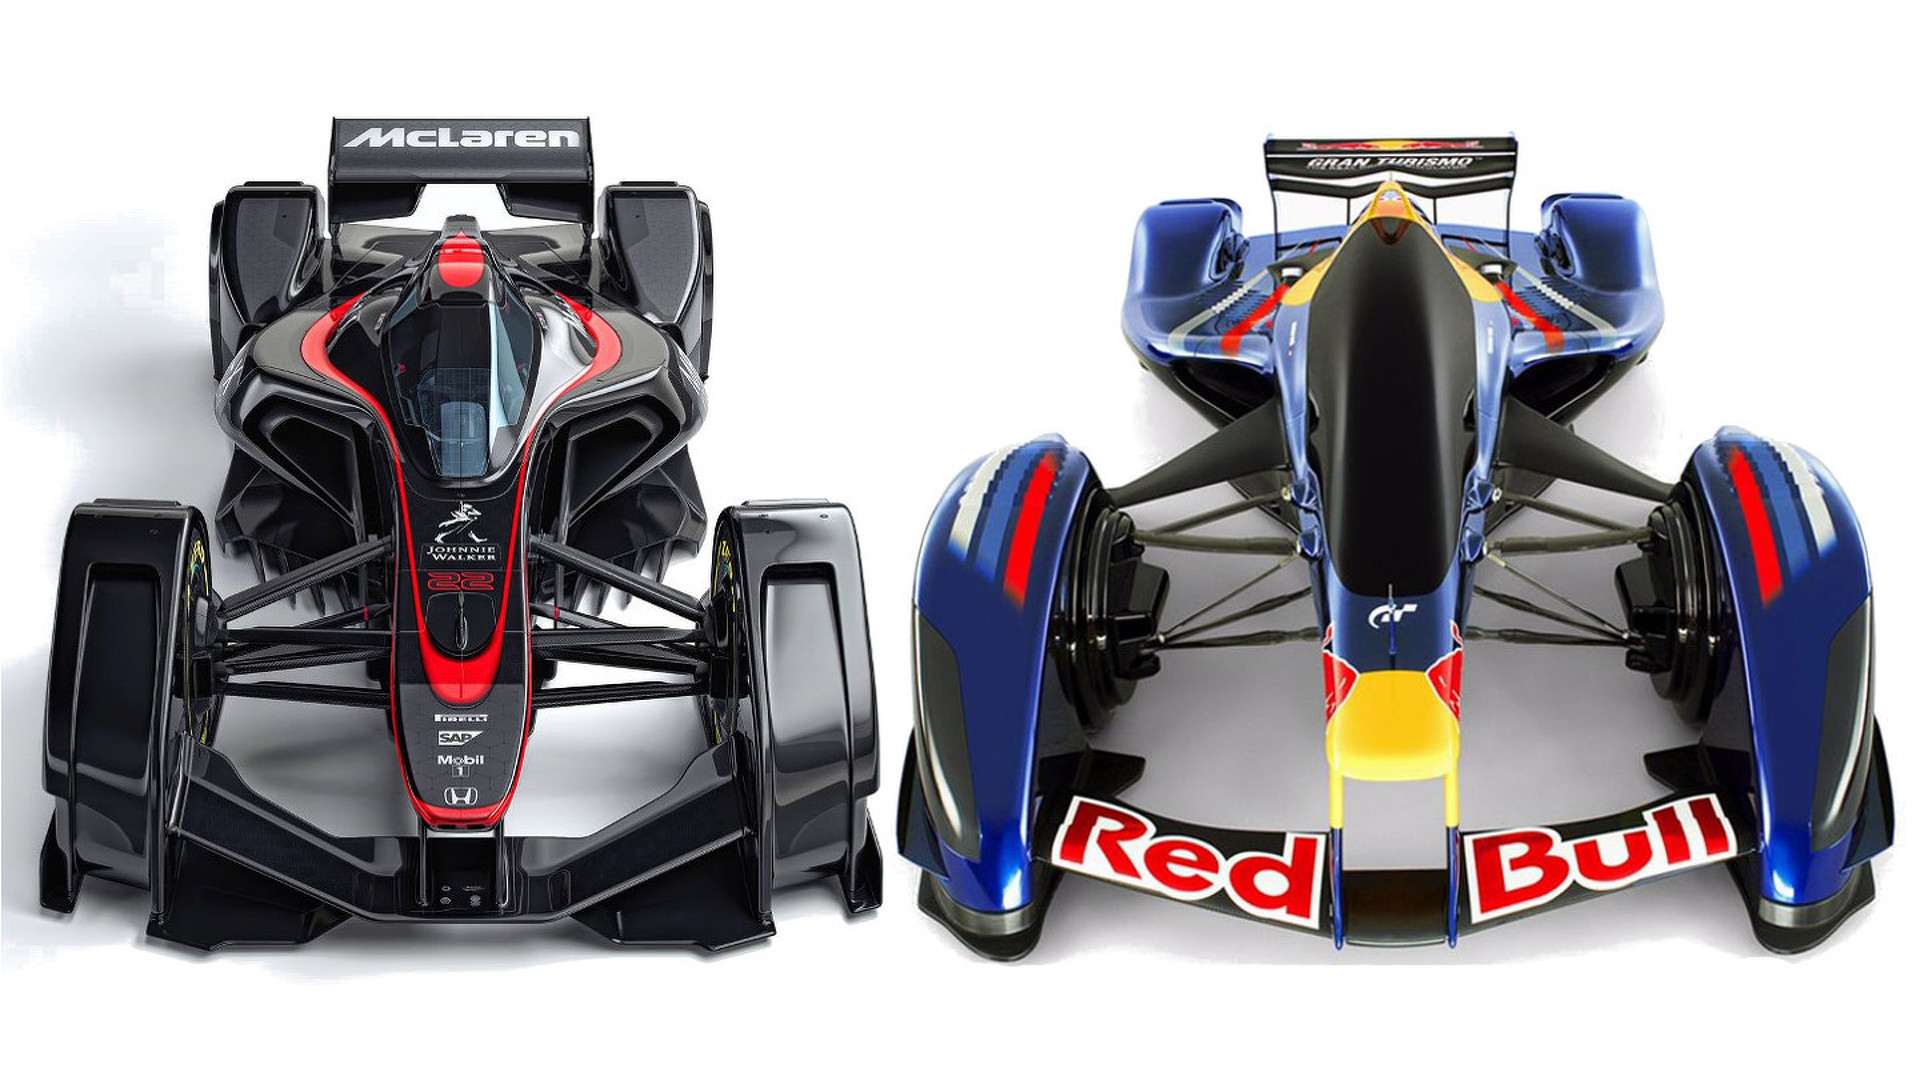 Red Bull pokes fun at McLaren for copying X2010 to create MP4-X